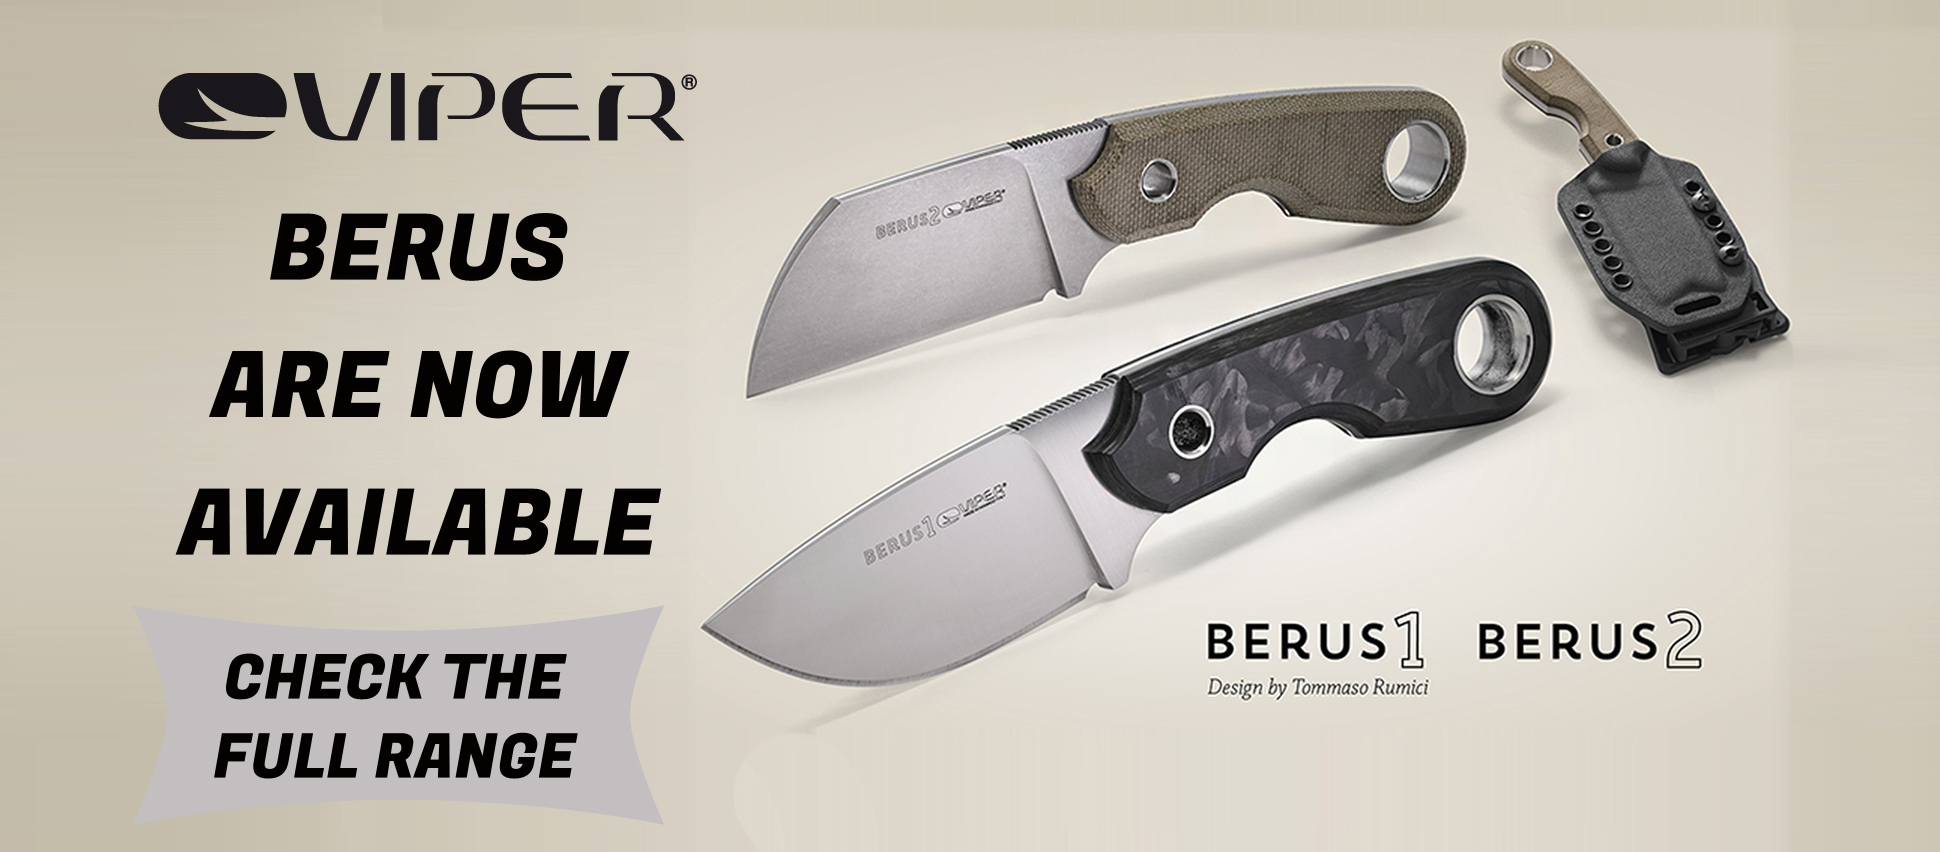 VIPER BERUS AVAILABLE